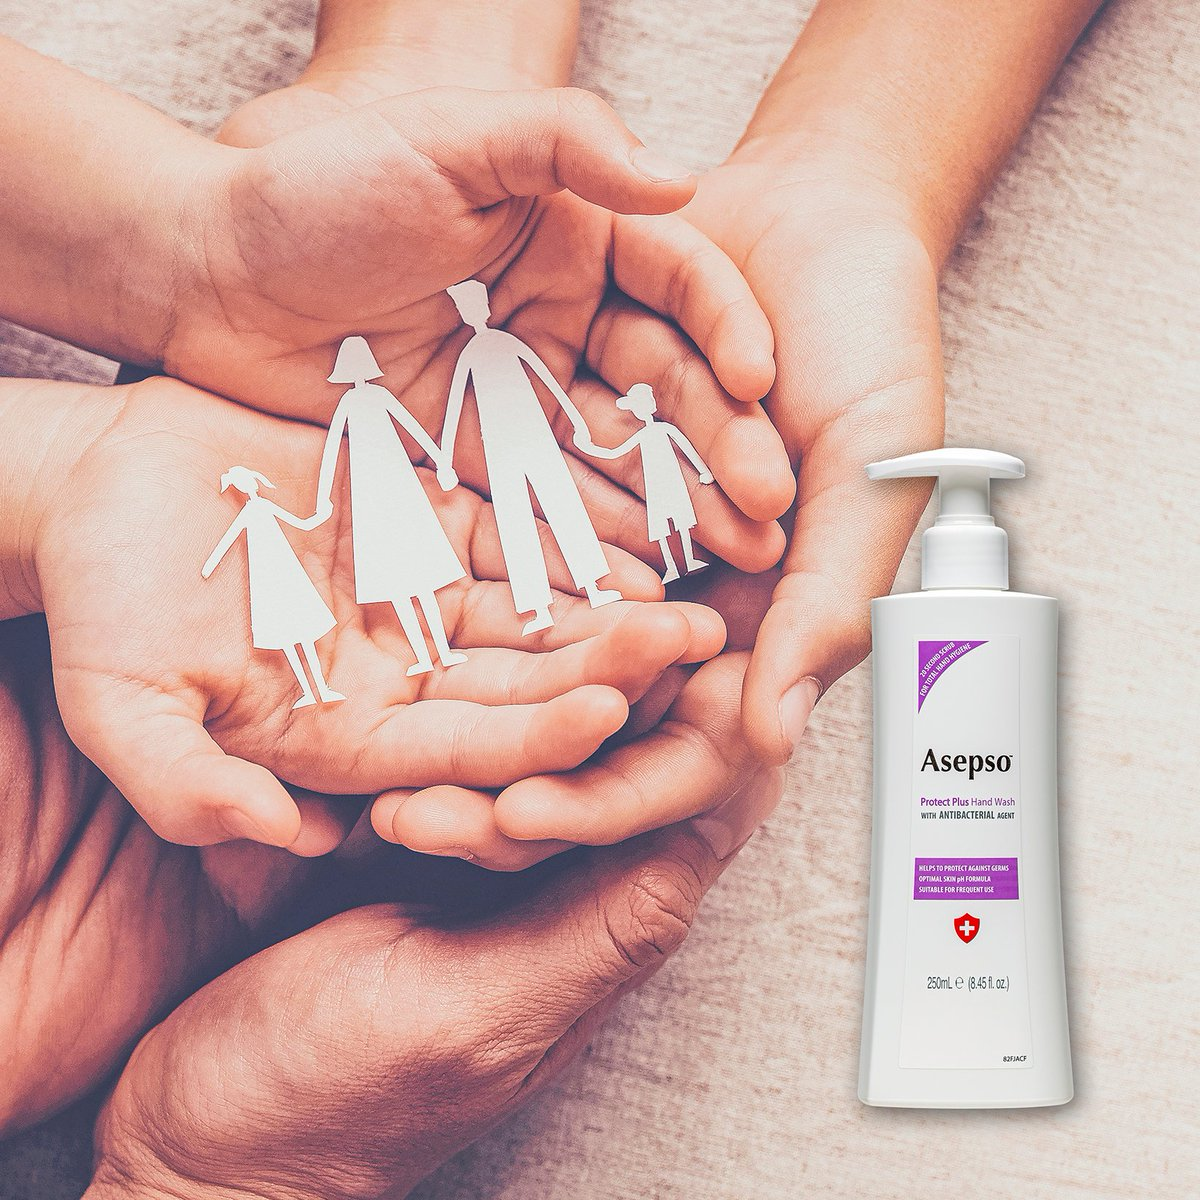 📸 NEW #Asepso Protect Plus Hand Wash 🤲🚿 https://t.co/3fEqnhh1v8